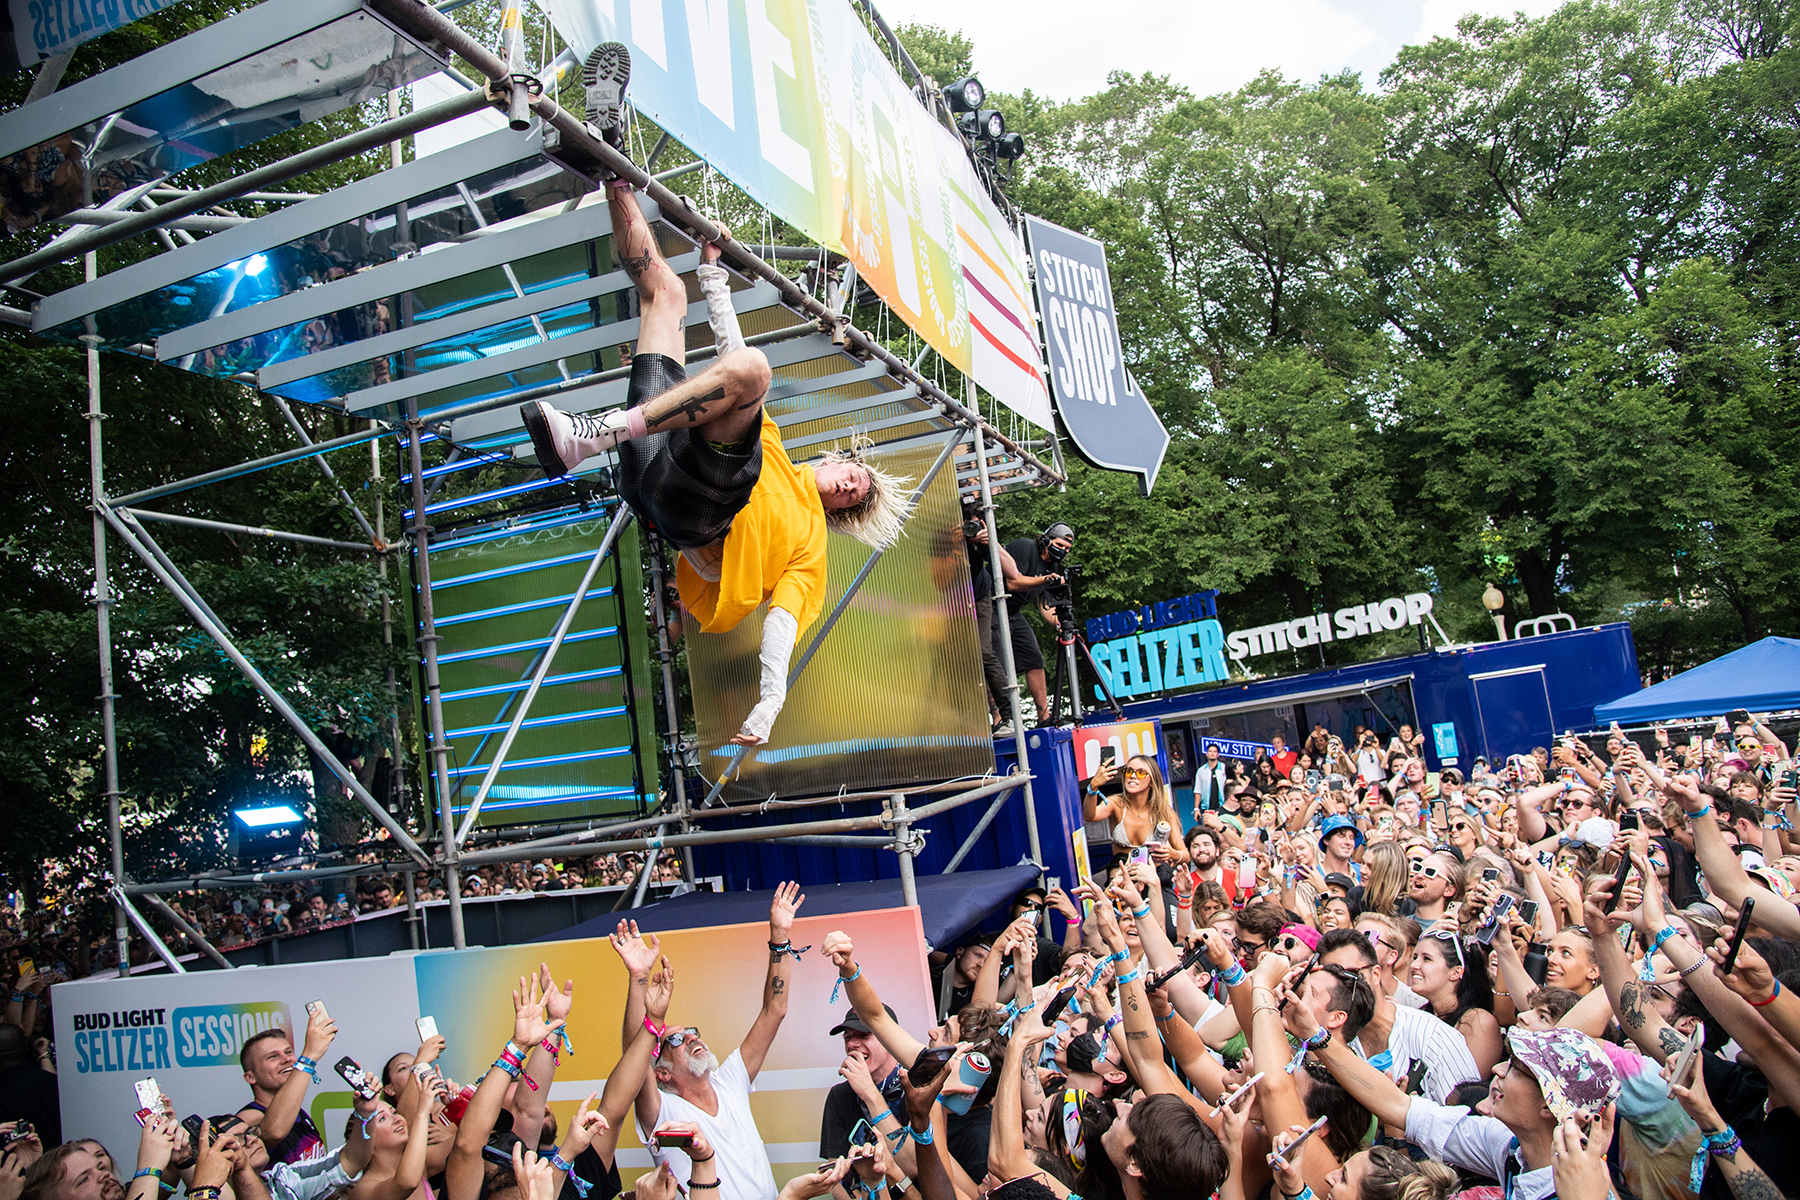 Machine Gun Kelly performs a surprise set on the Bud Light Seltzer Sessions stage on day three of the Lollapalooza Music Festival on Saturday, July 31, 2021, at Grant Park in Chicago. (Photo by Amy Harris/Invision/AP)